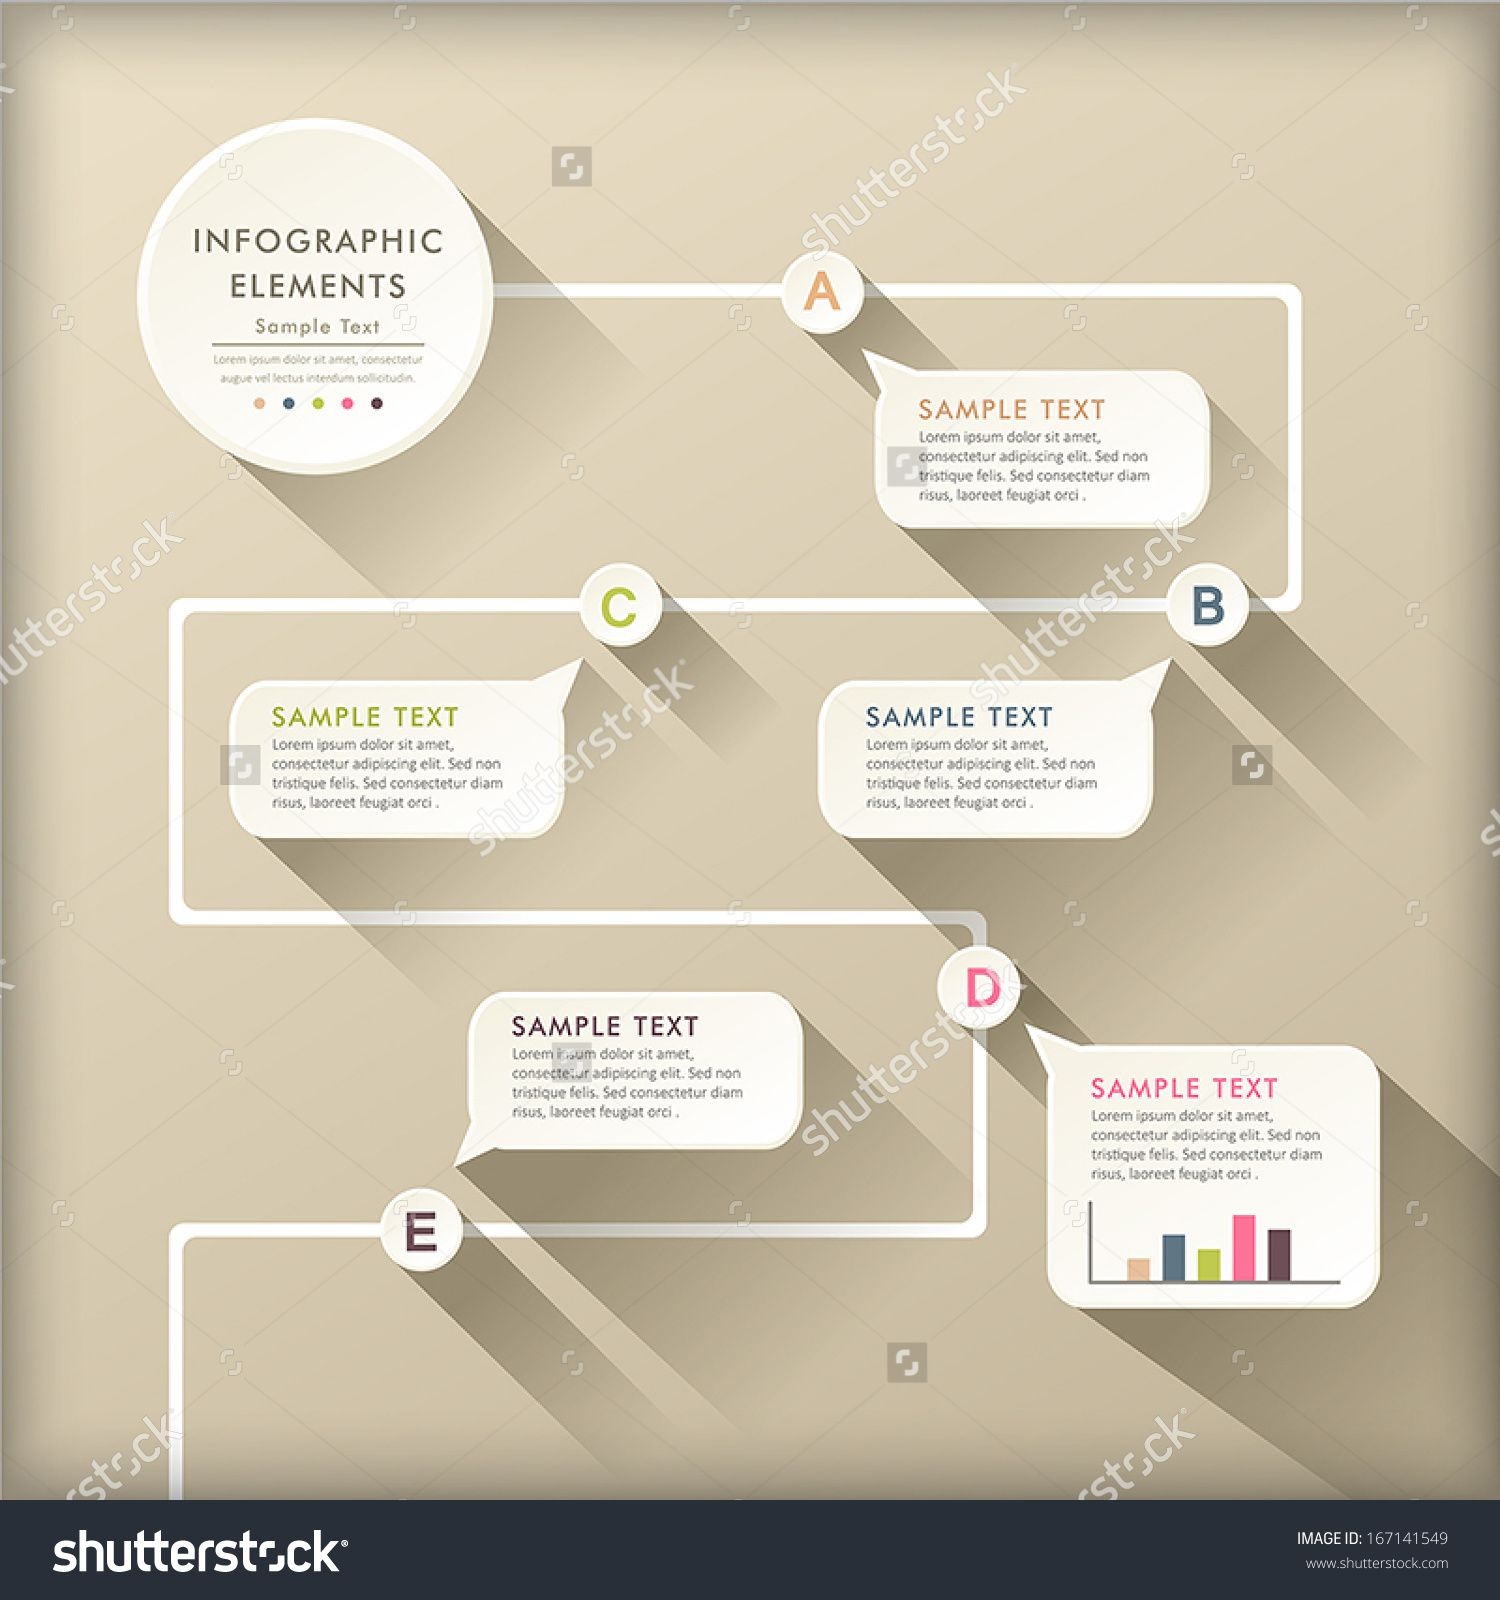 Vector abstract flat design flow chart infographic elements buy this stock on shutterstock  find other images also best flowcharts pinterest flowchart info graphics rh